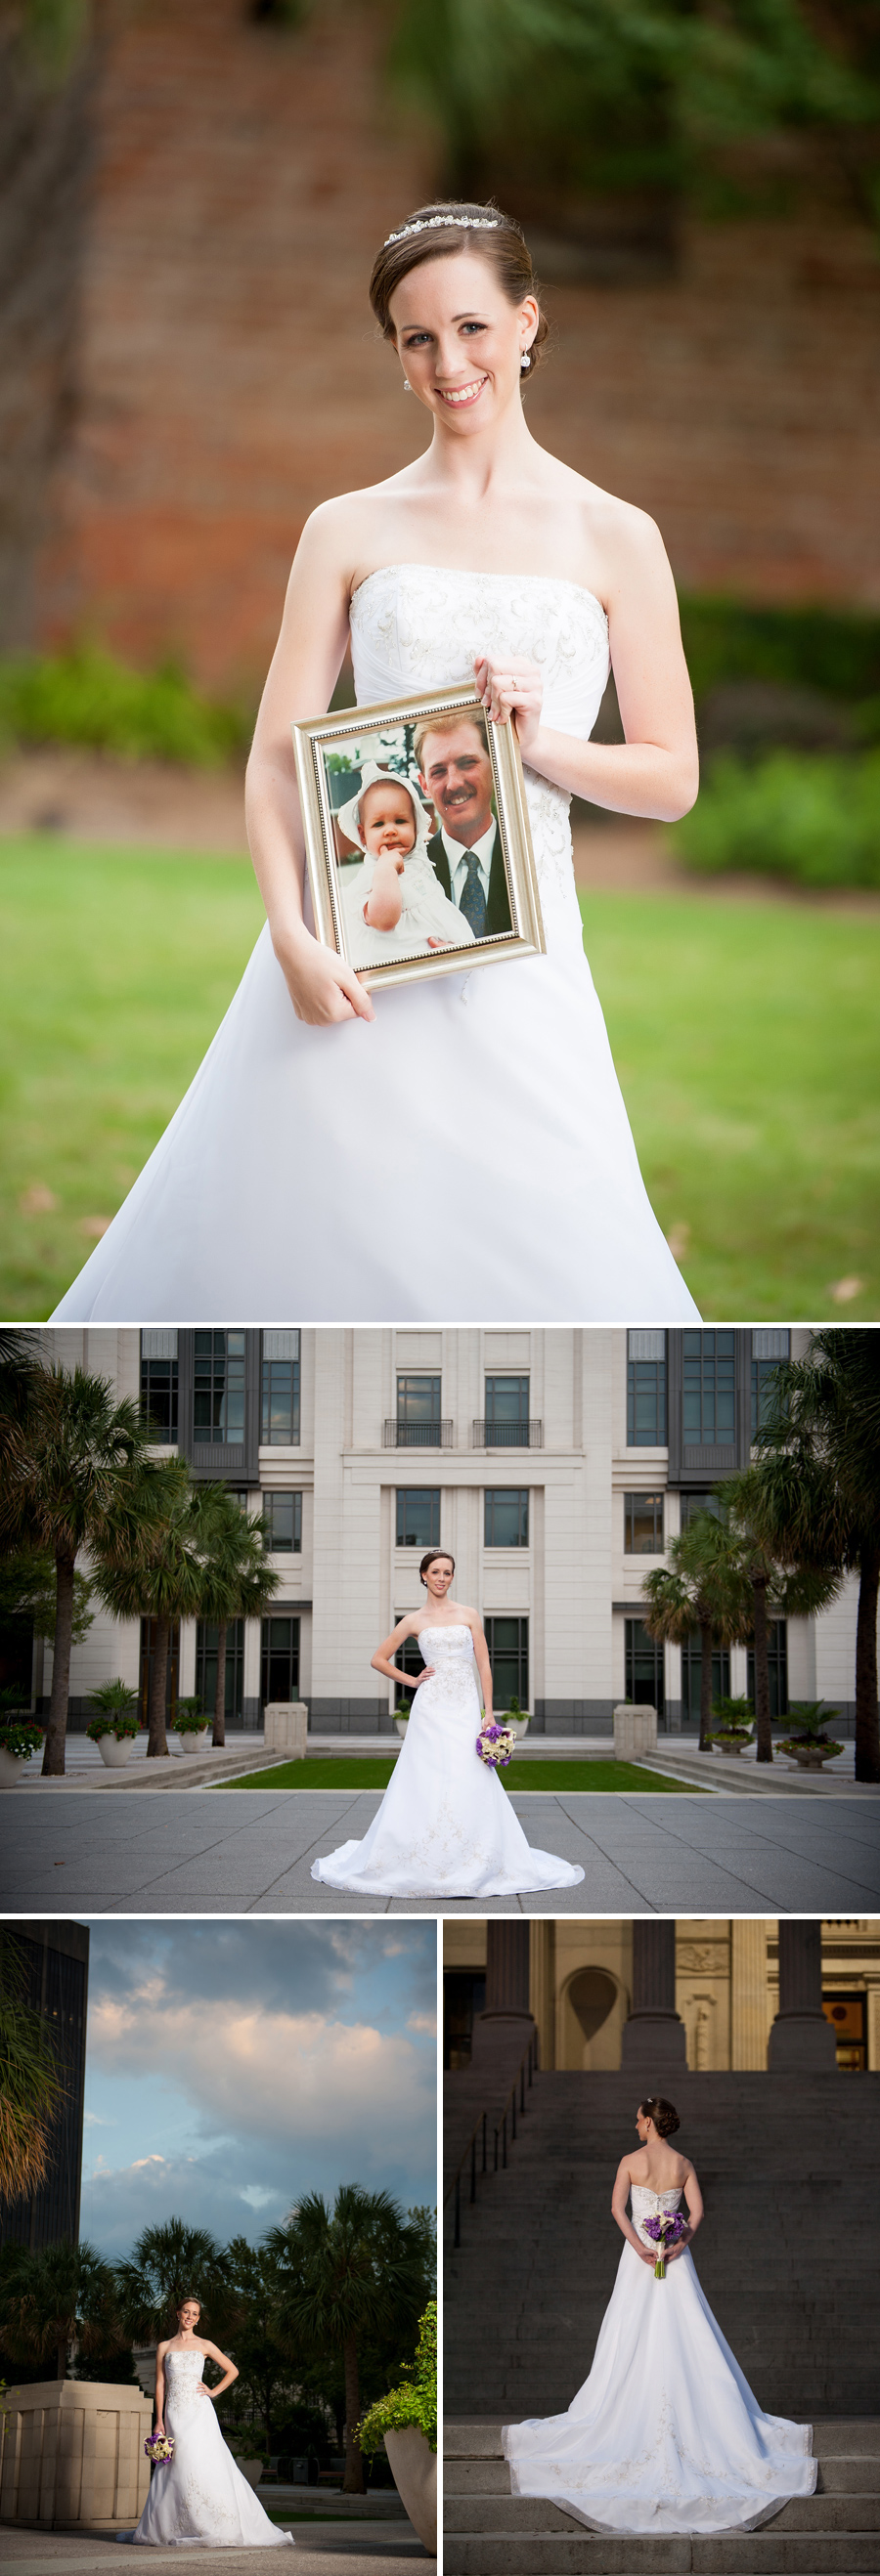 Alyssa bridal portrait session Columbia SC